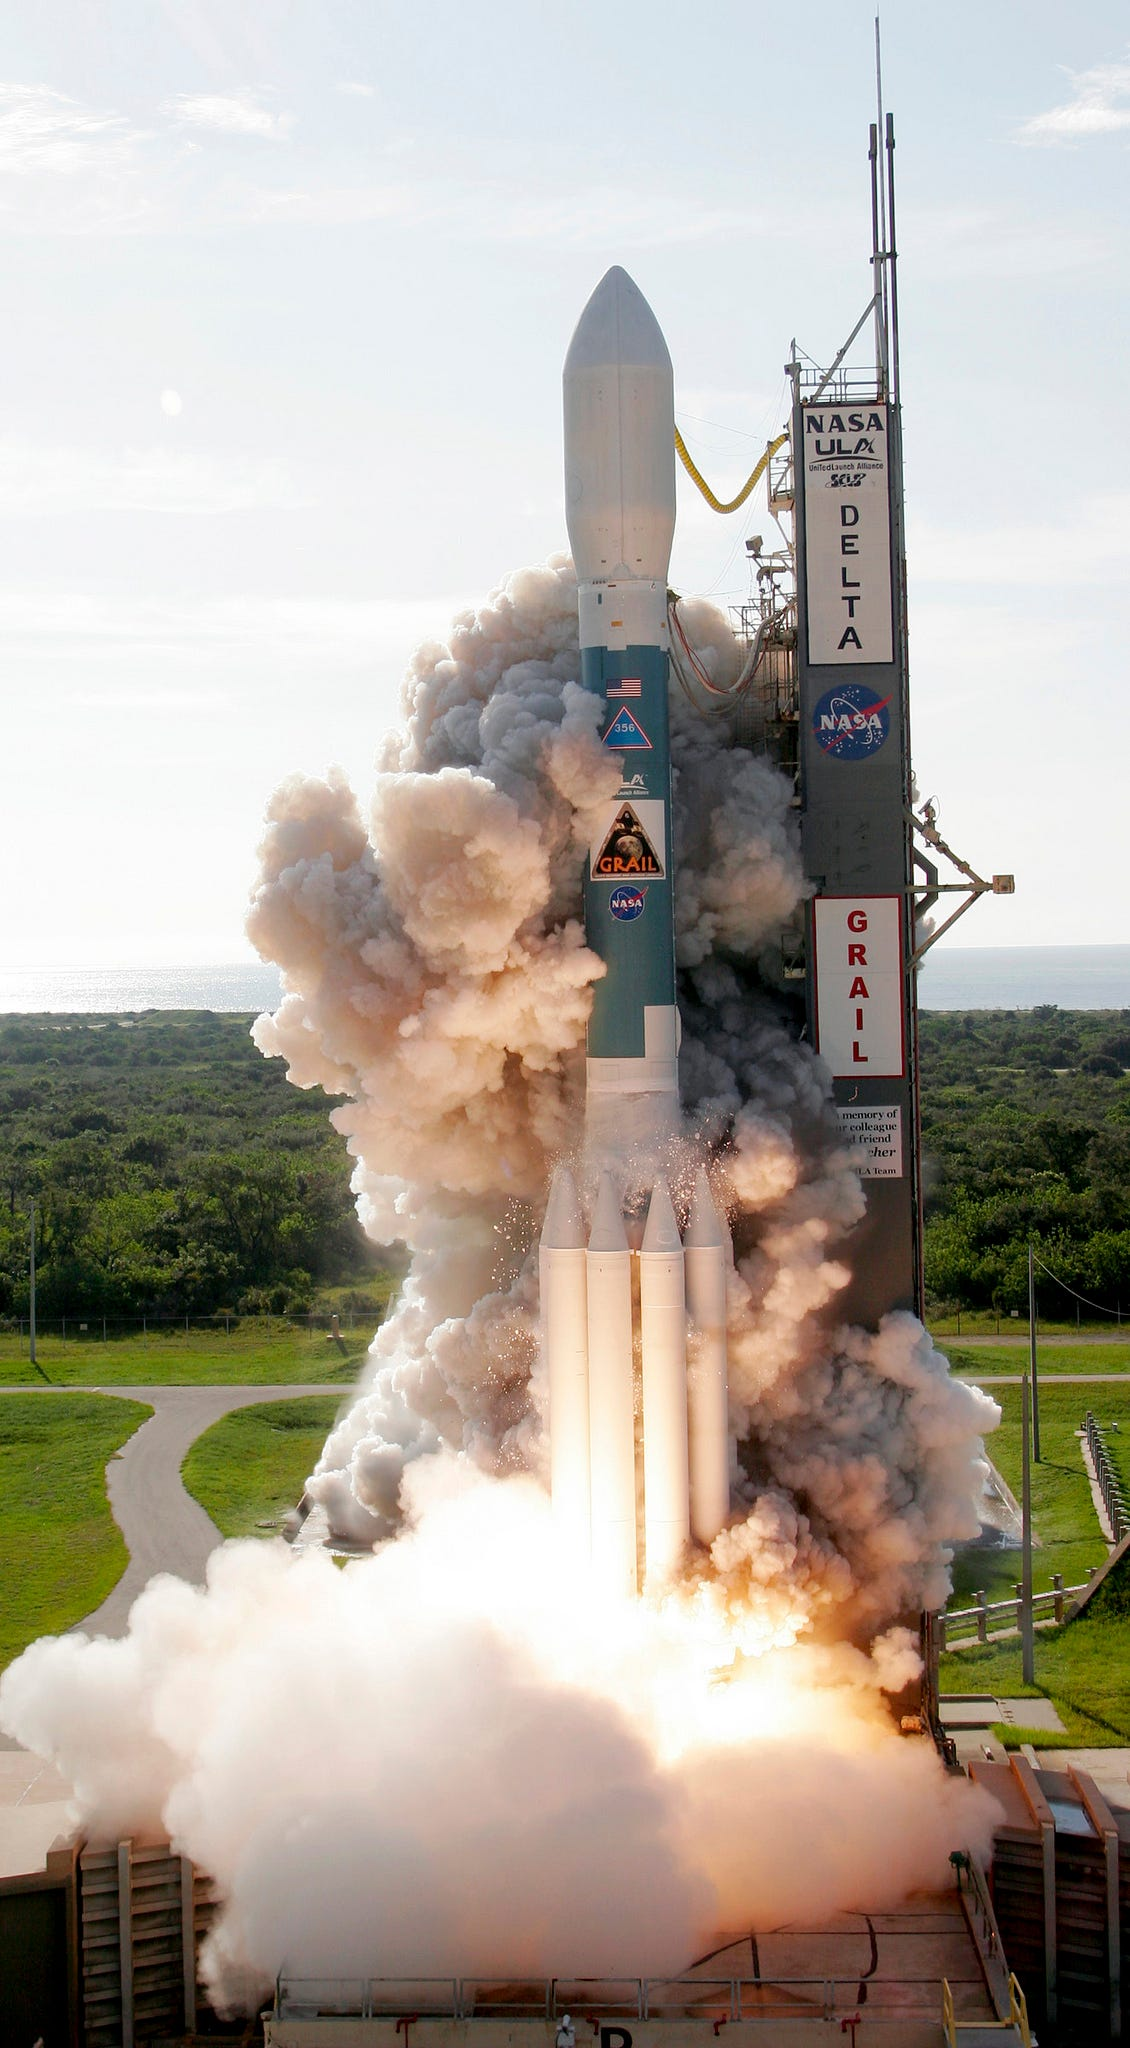 0ef1d1ca-5246-45d1-b3ab-fafee7918223-deltaii_grail_liftoff In California, storied Delta II rocket set for final launch with NASA satellite